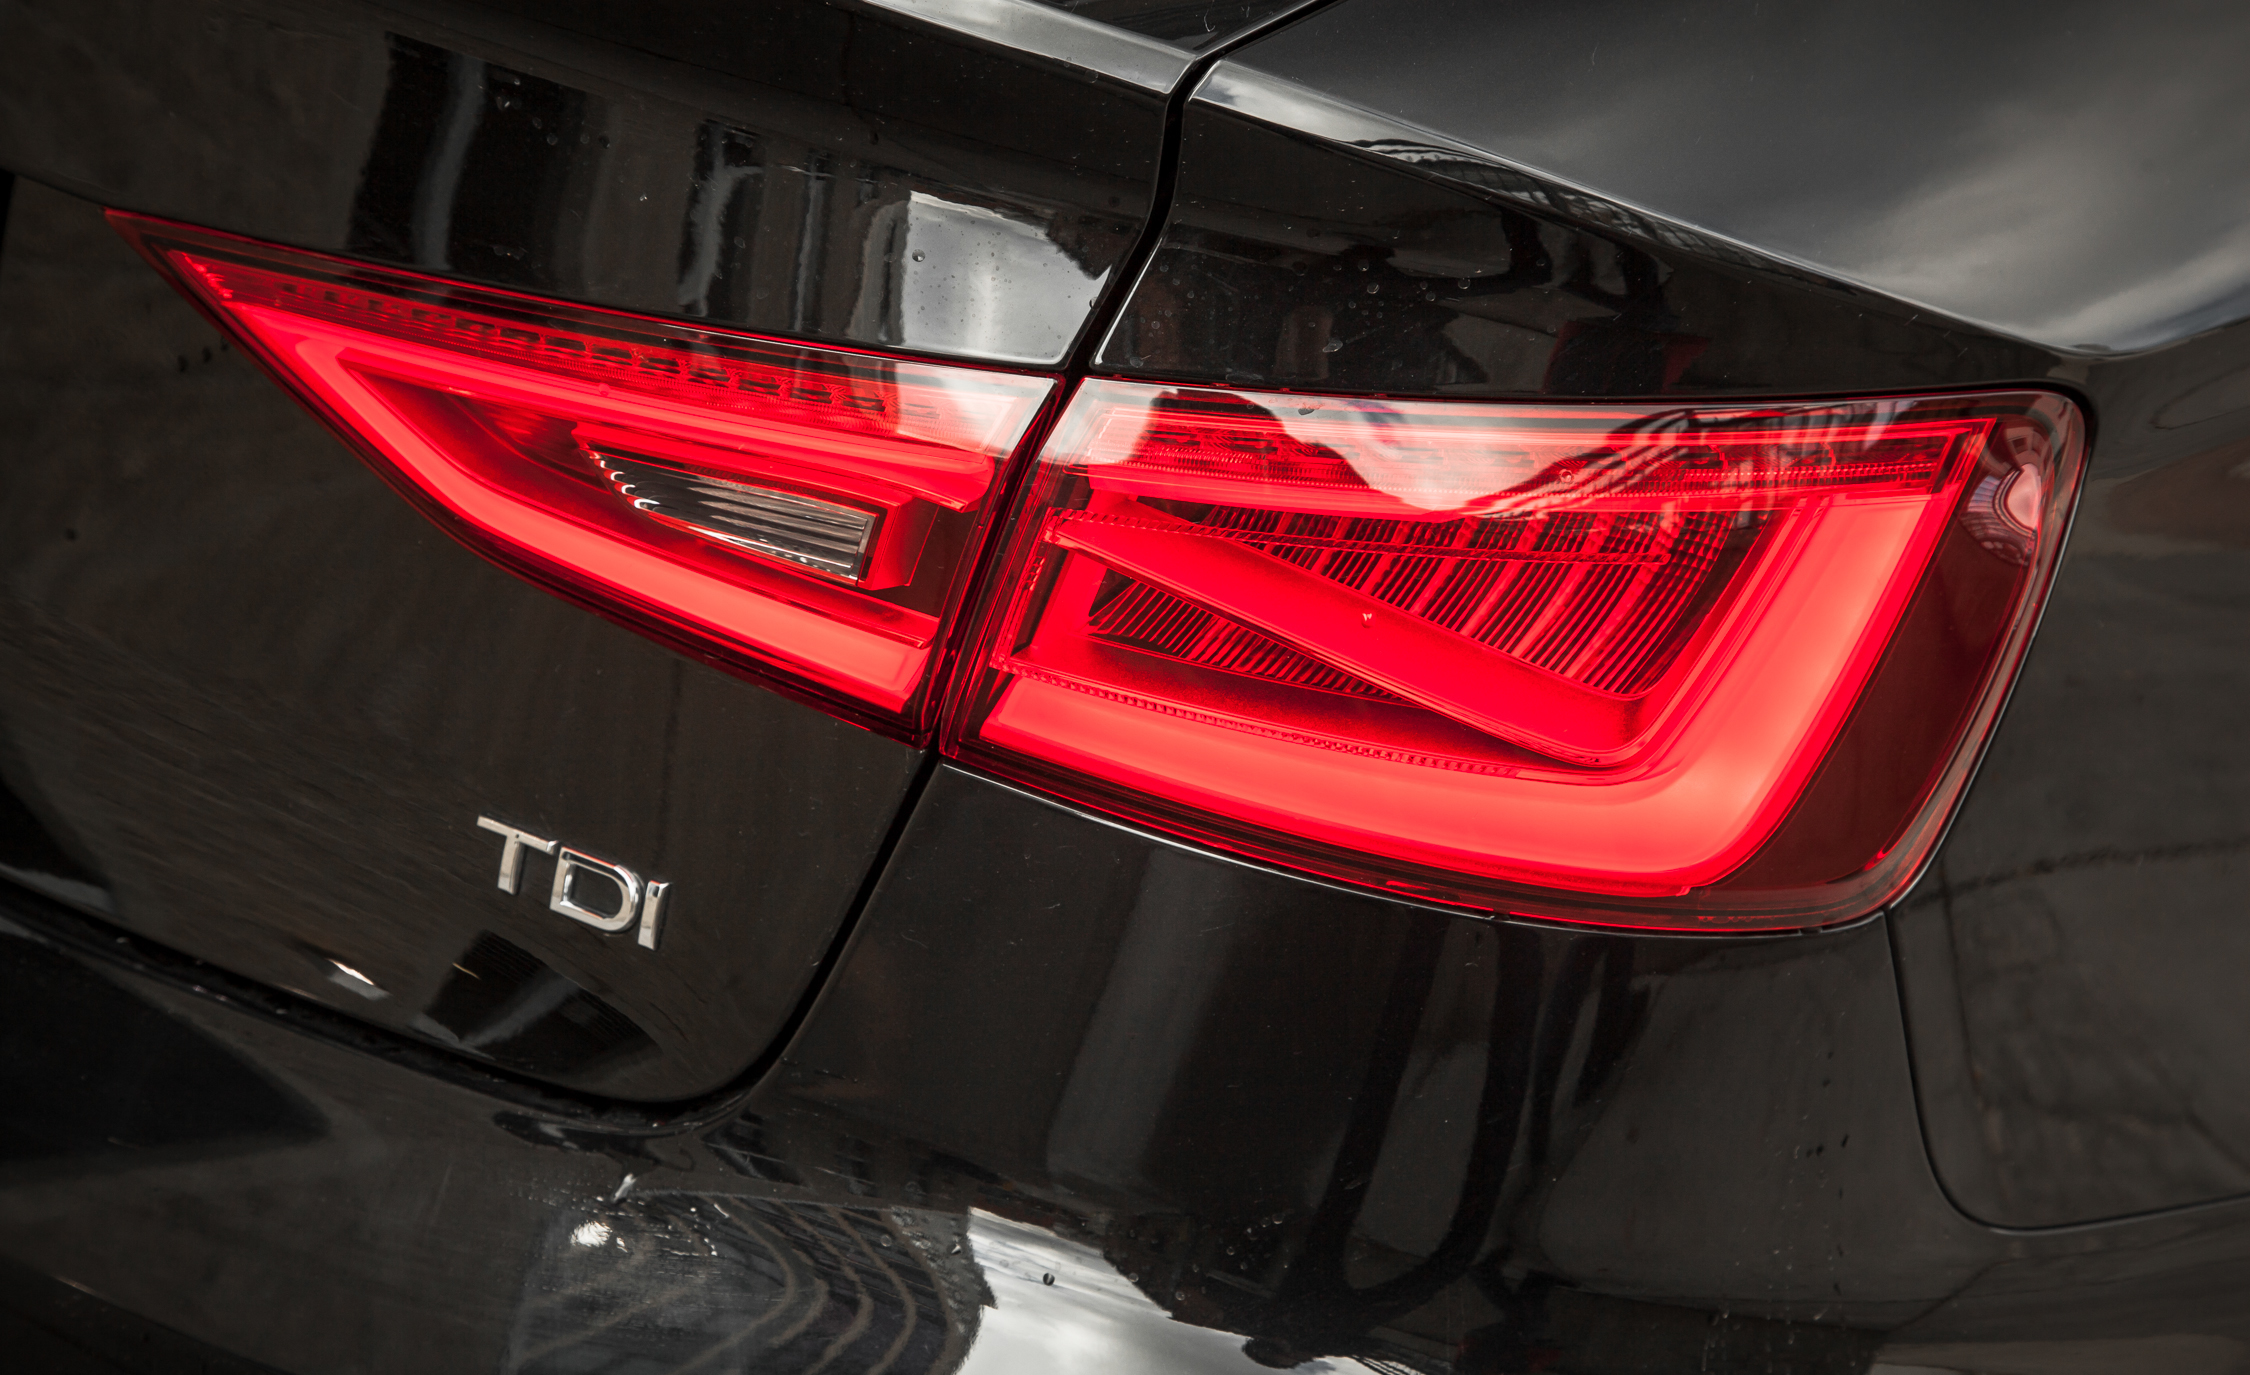 2015 Audi A3 TDI Exterior View Taillight (Photo 30 of 50)